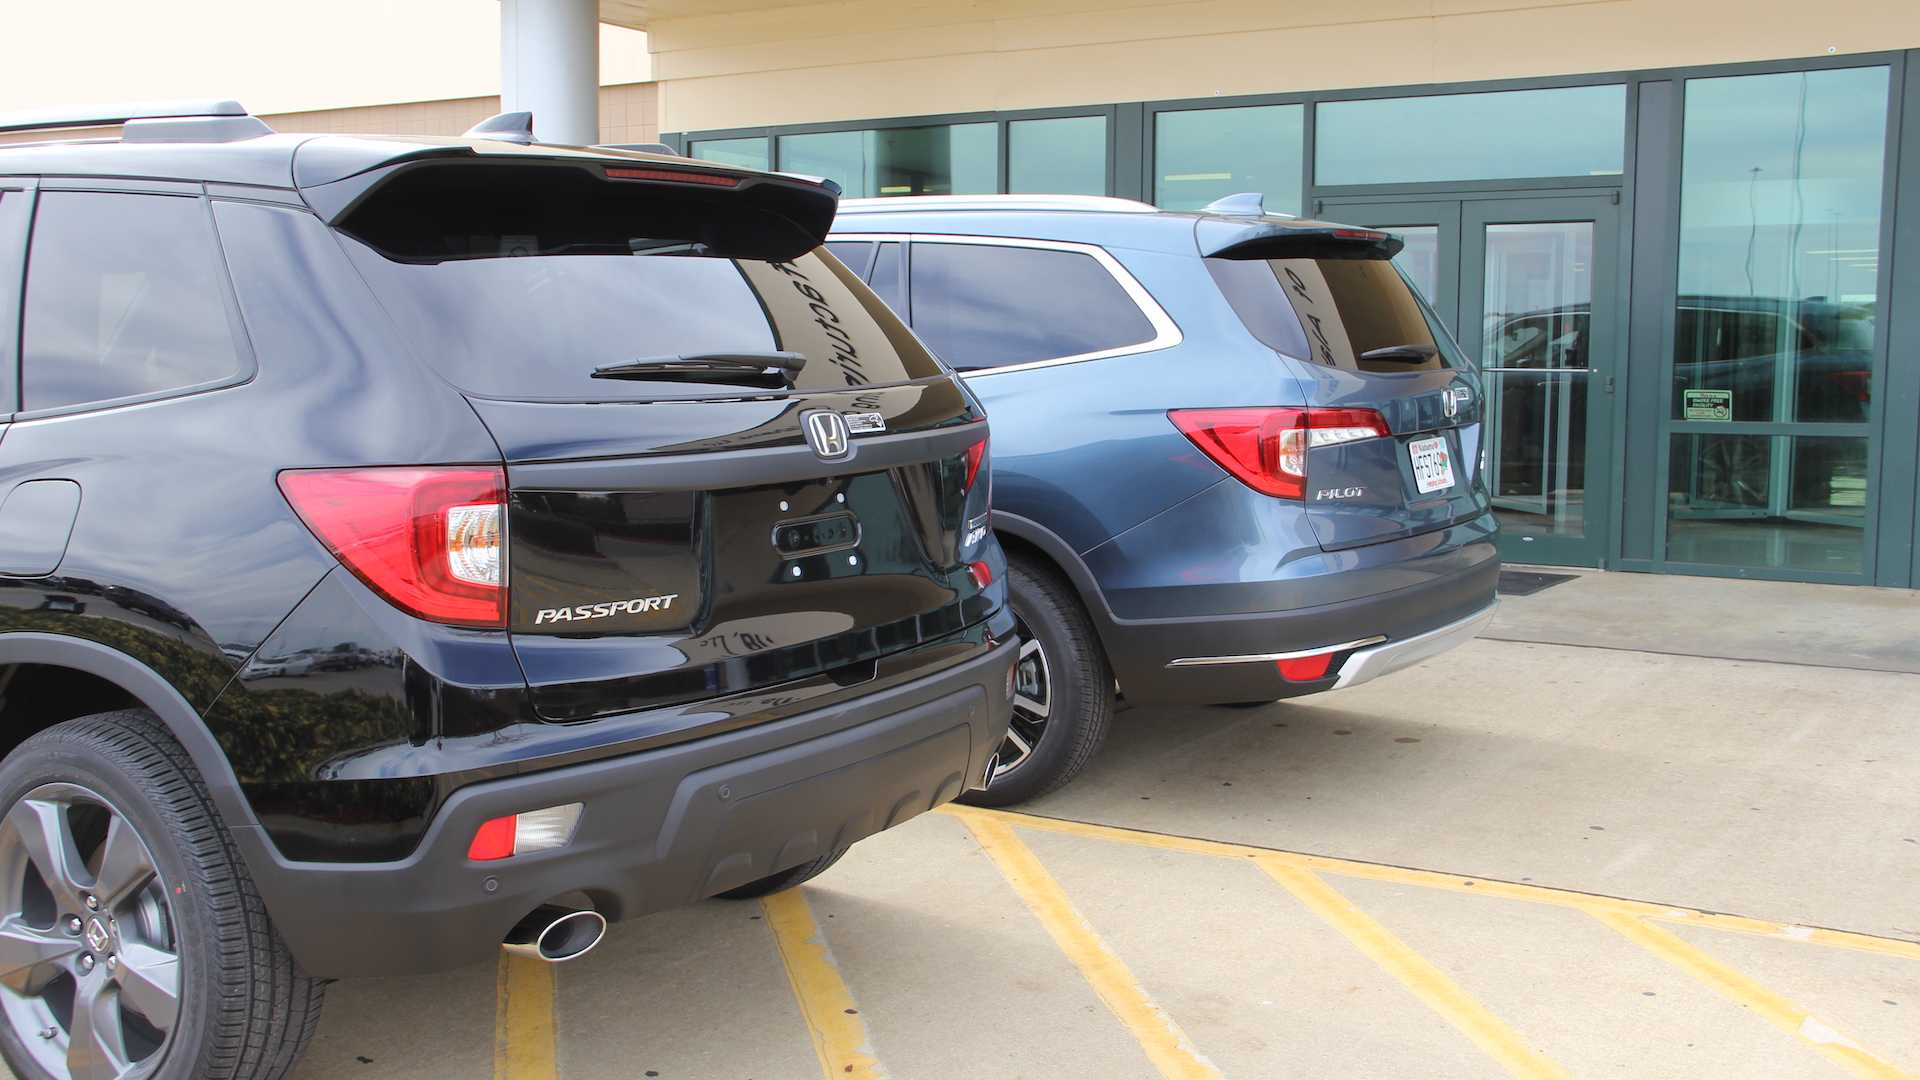 2019-honda-passport-vs-2019-honda-pilot-so-sanh-7.jpg